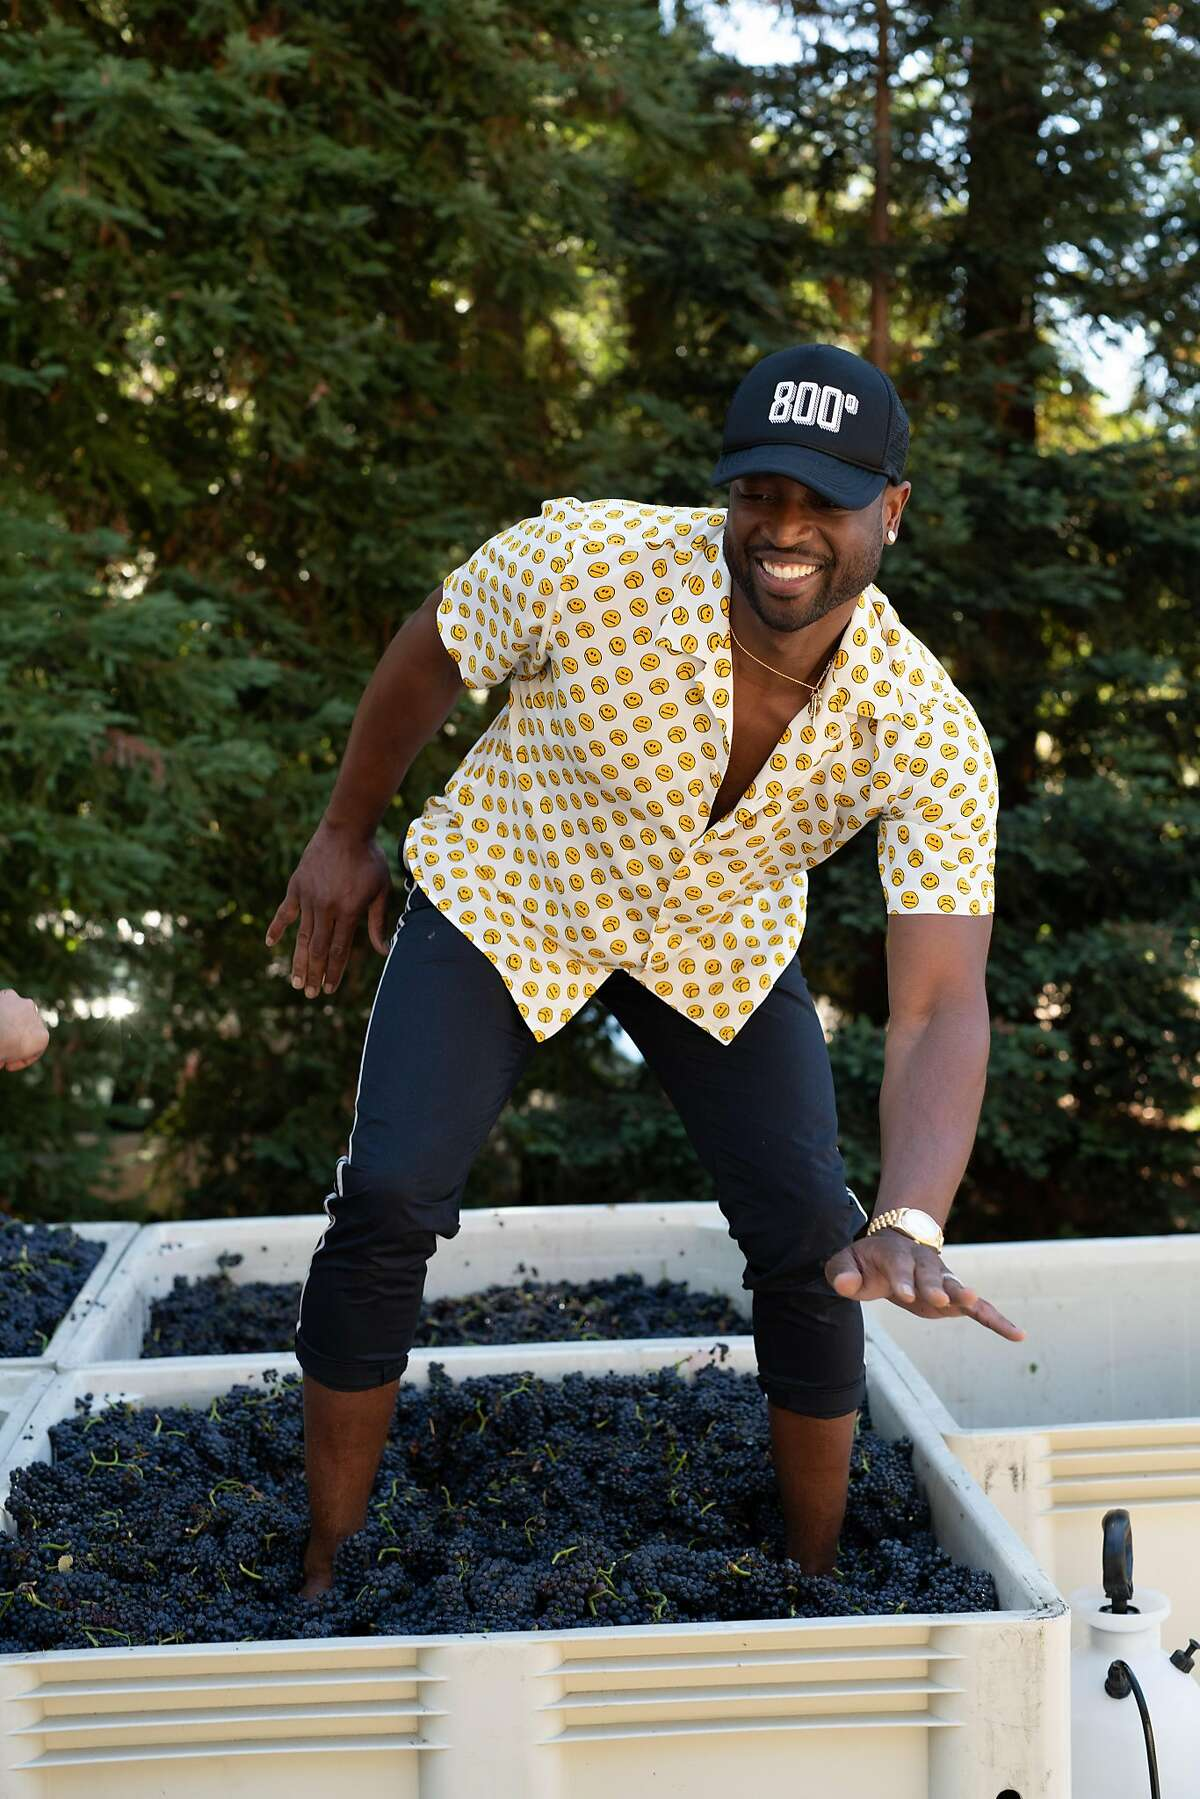 NBA star Dwyane Wade owns D Wade Cellars in partnership with Napa's Pahlmeyer family.